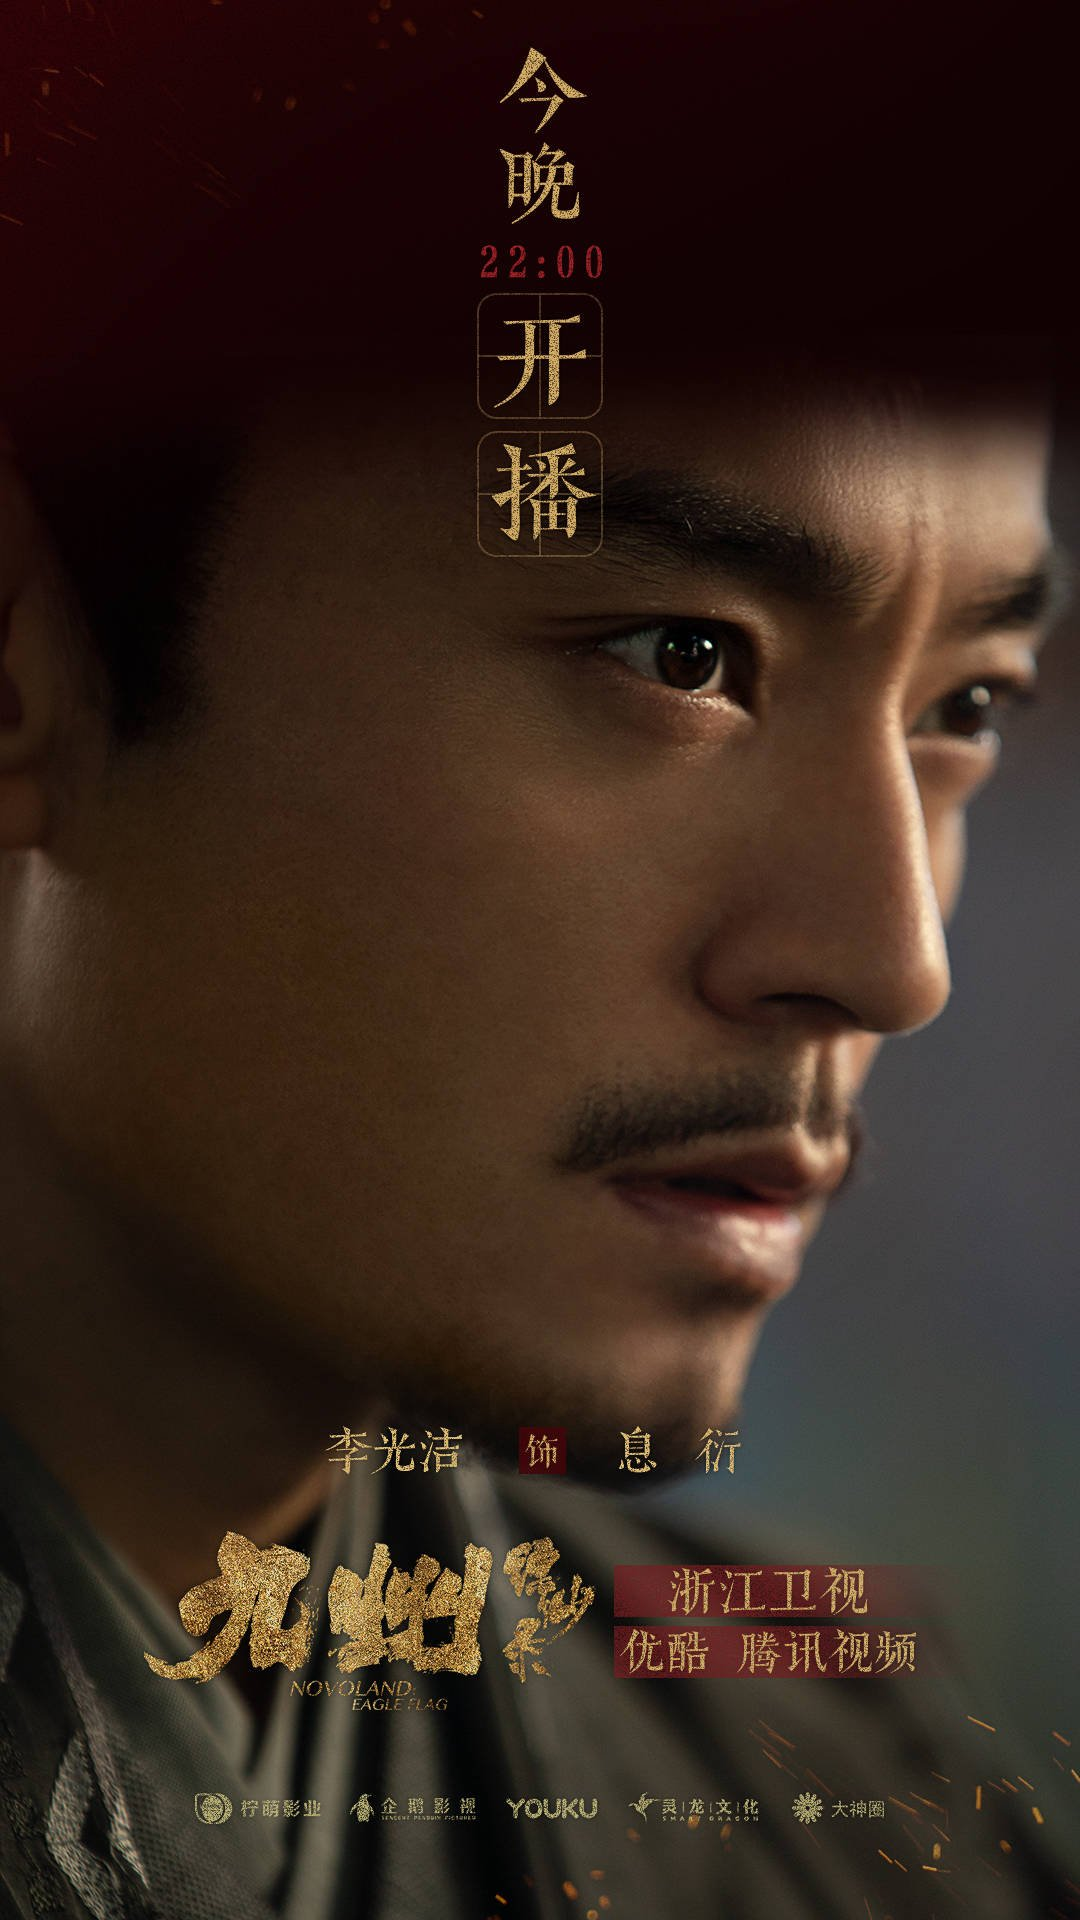 https://cfen si/2019/06/02/round-up-of-current-filming-dramas